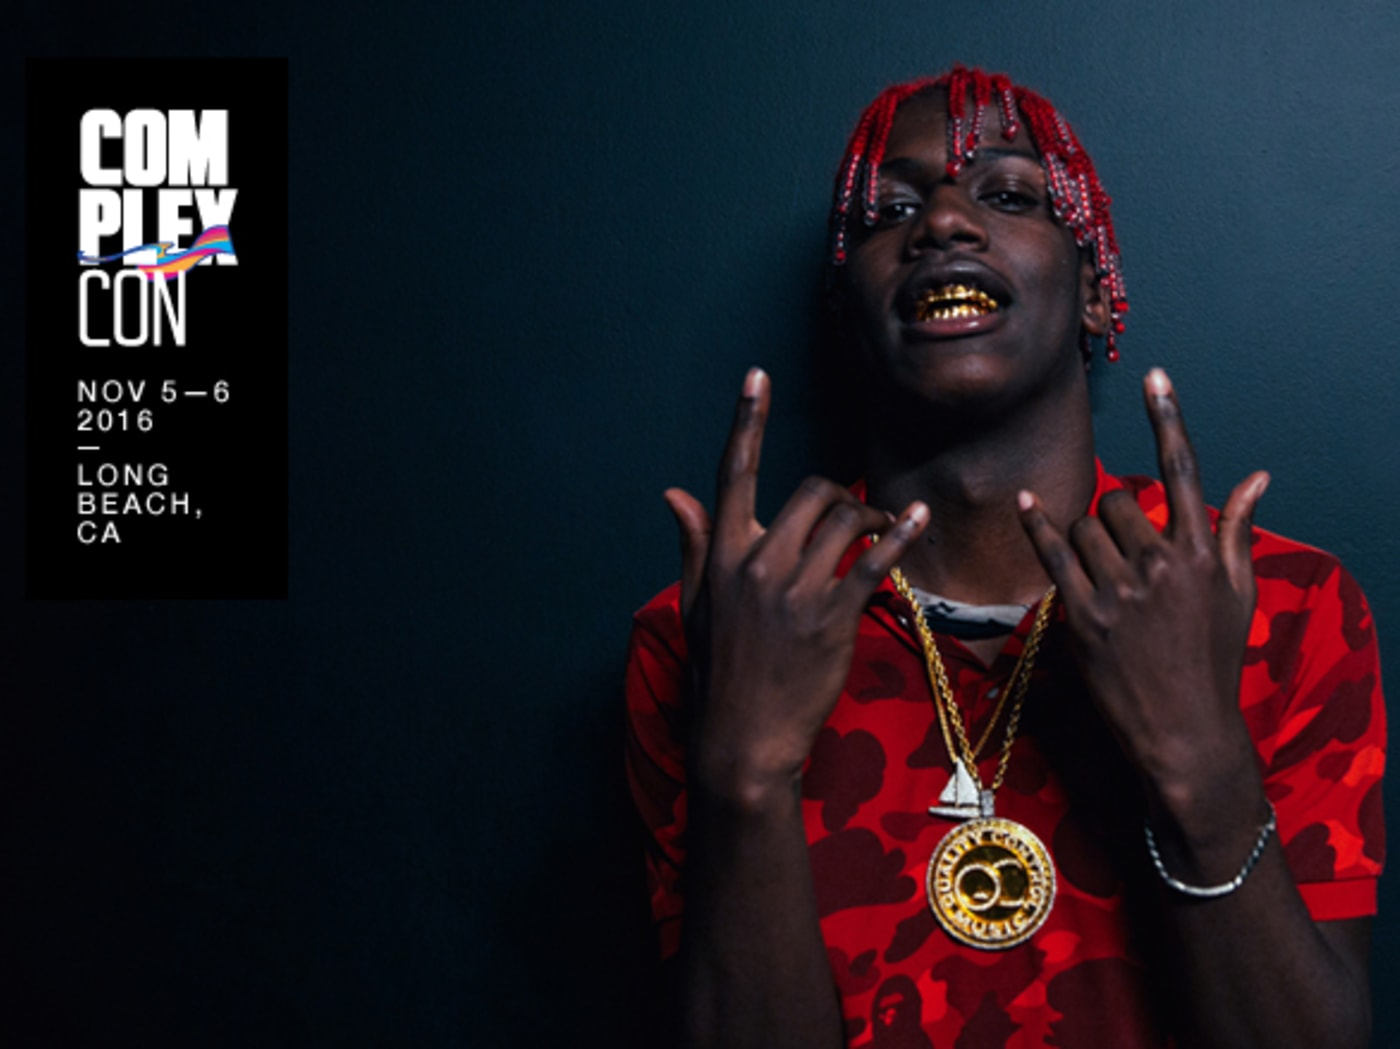 Lil Yachty ComplexCon